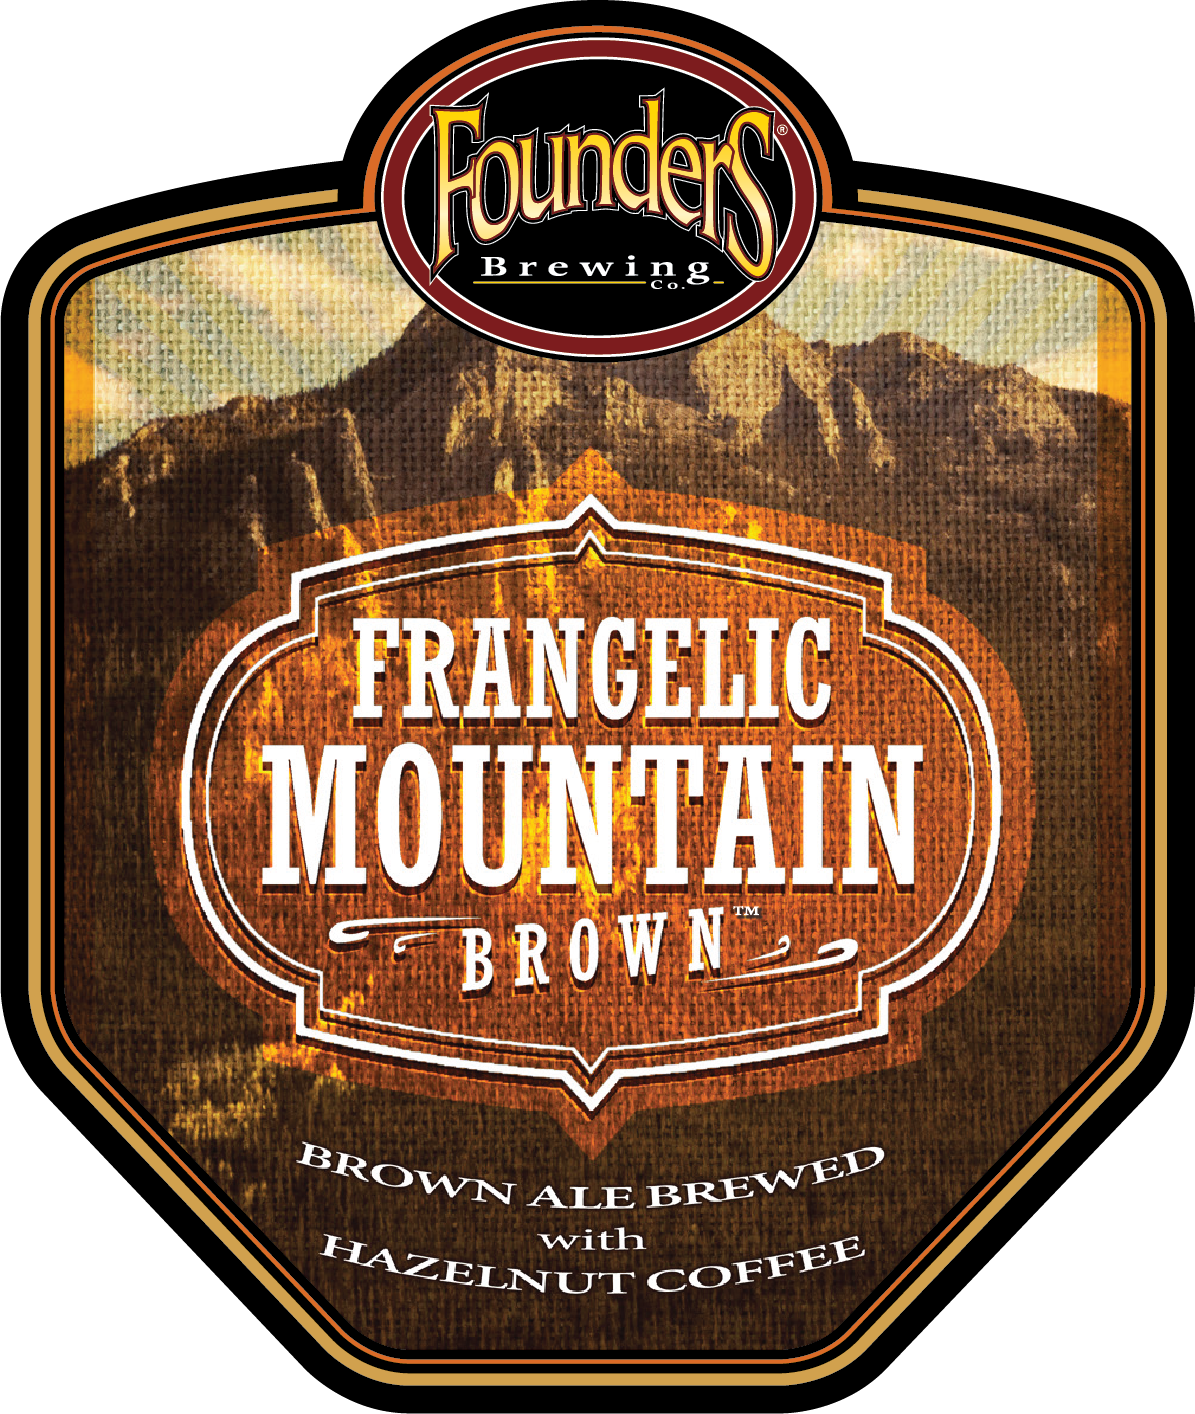 Founders Frangelic Mountain logo